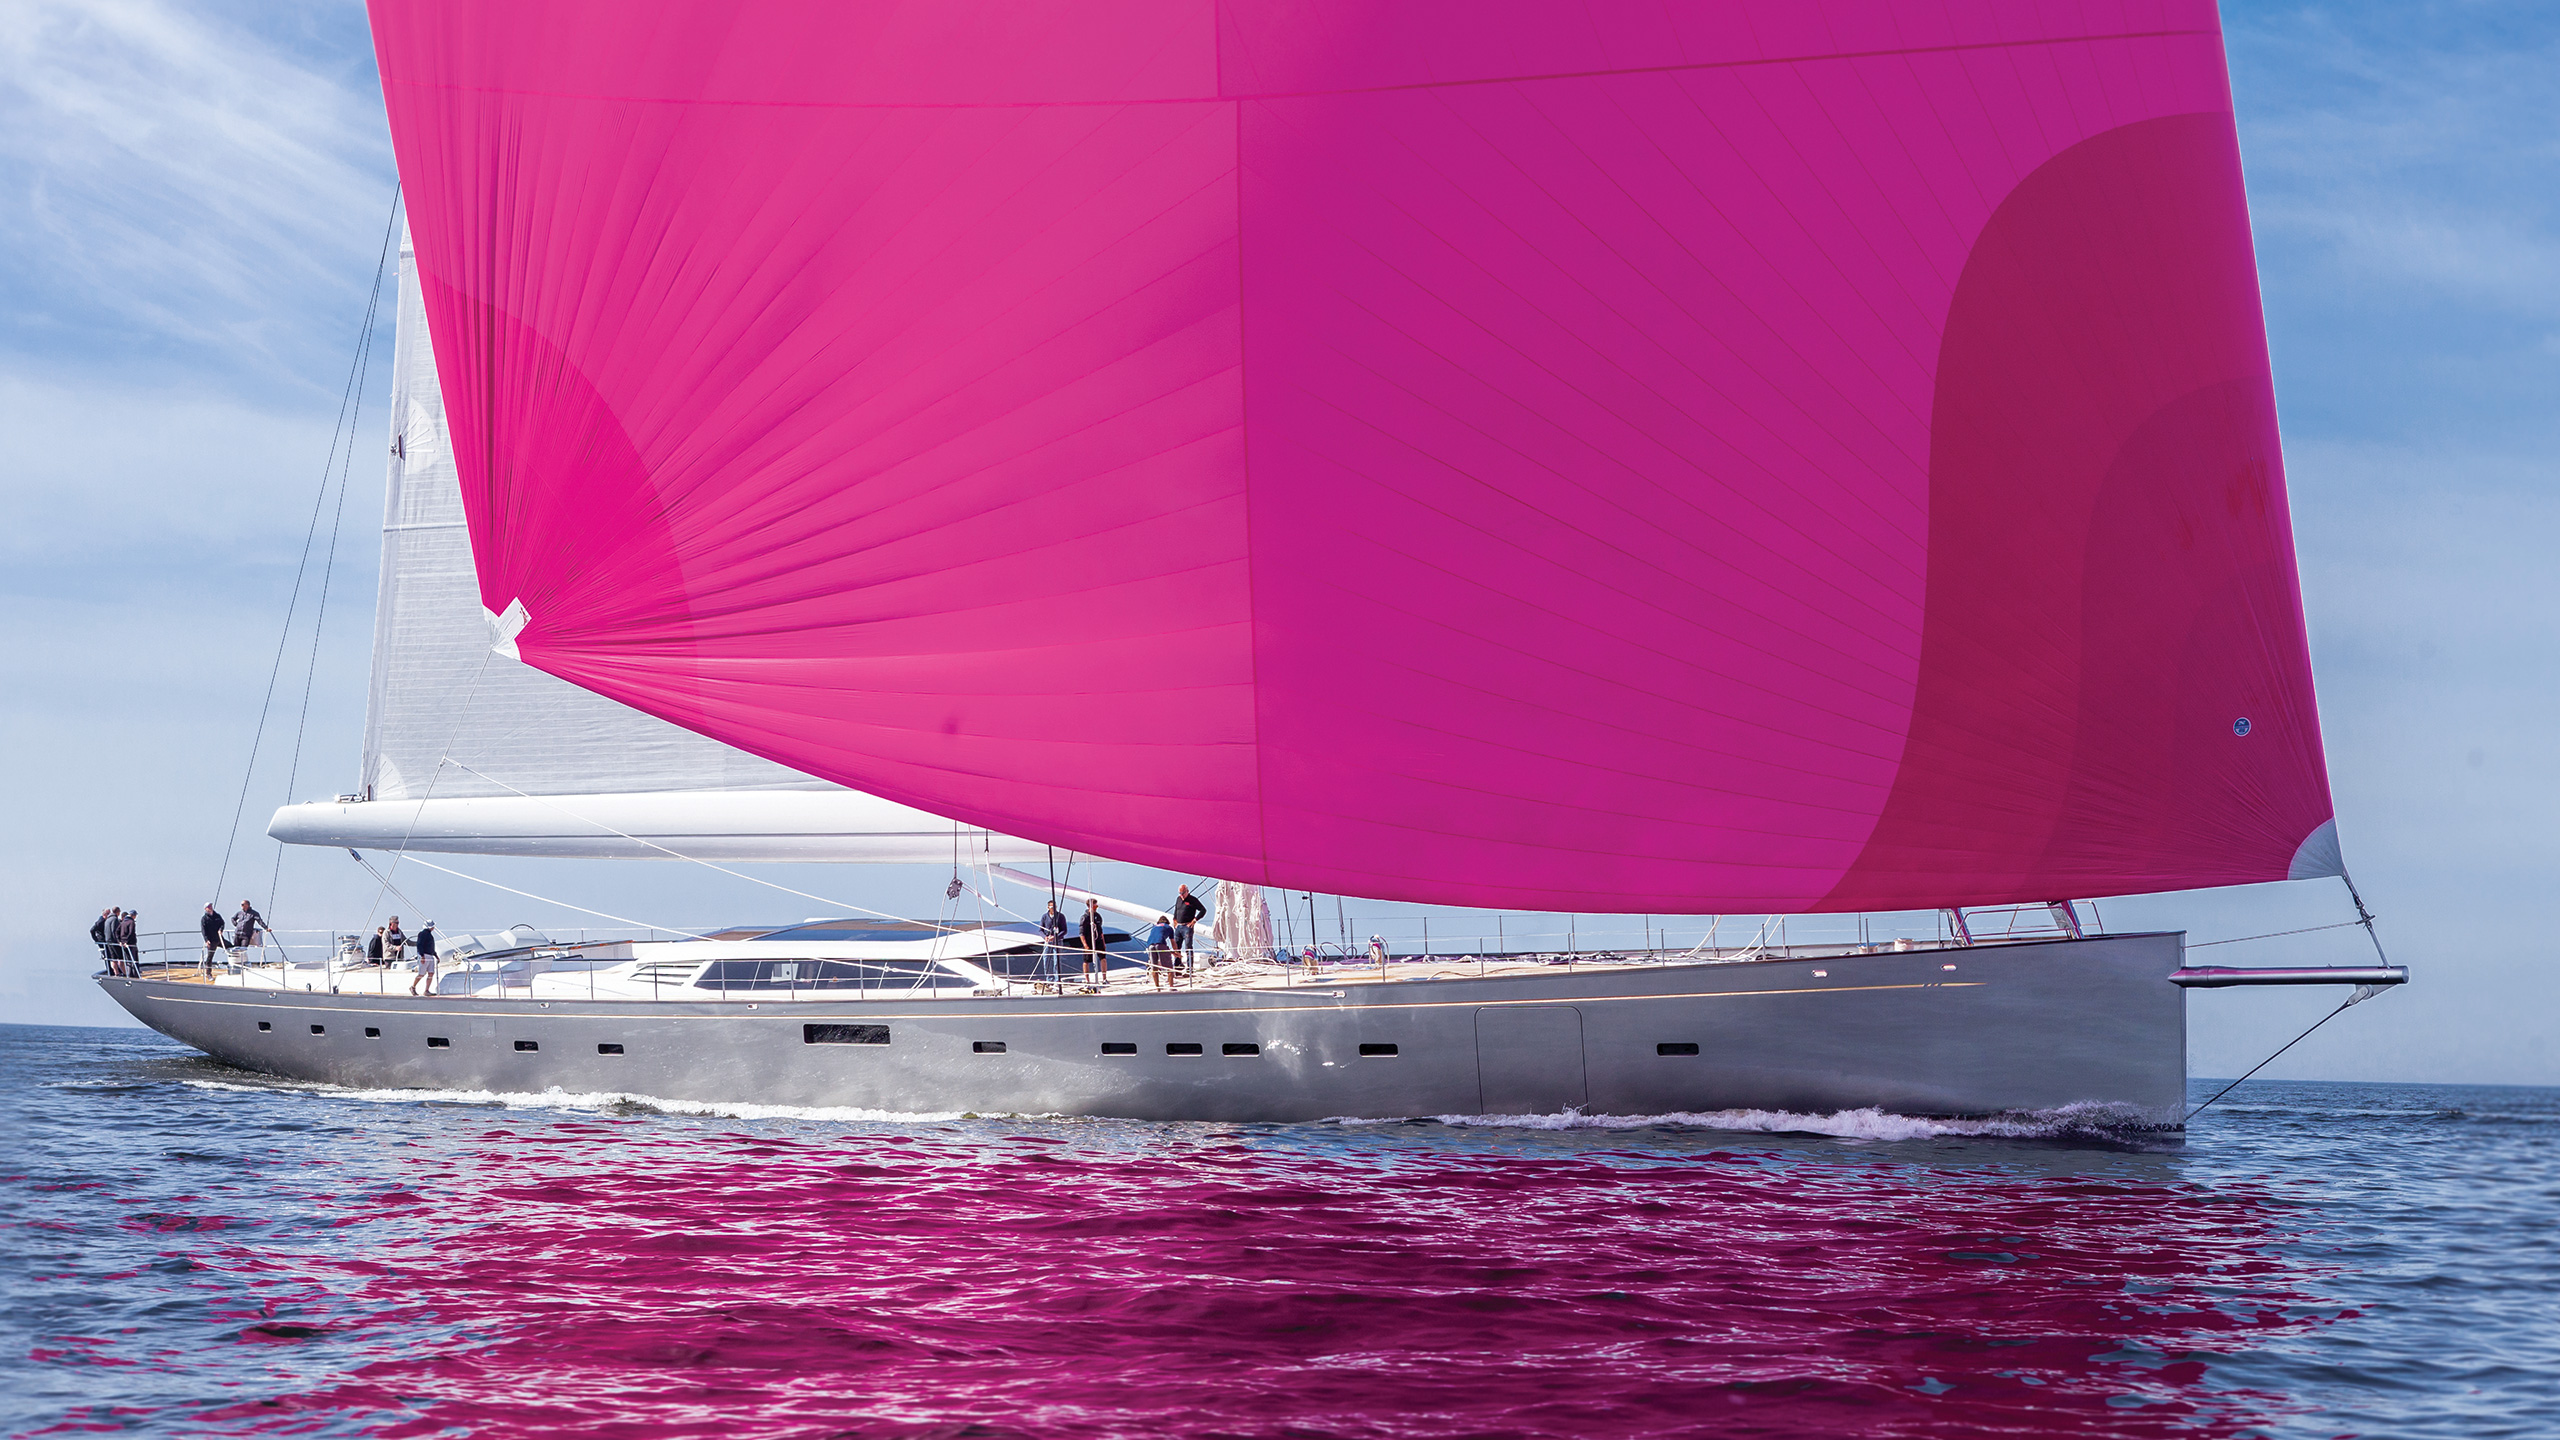 side-view-of-the-baltic-sailing-yacht-pink-gin-vi-credit-Eva-Stina-Kjellman-Marco-Moog